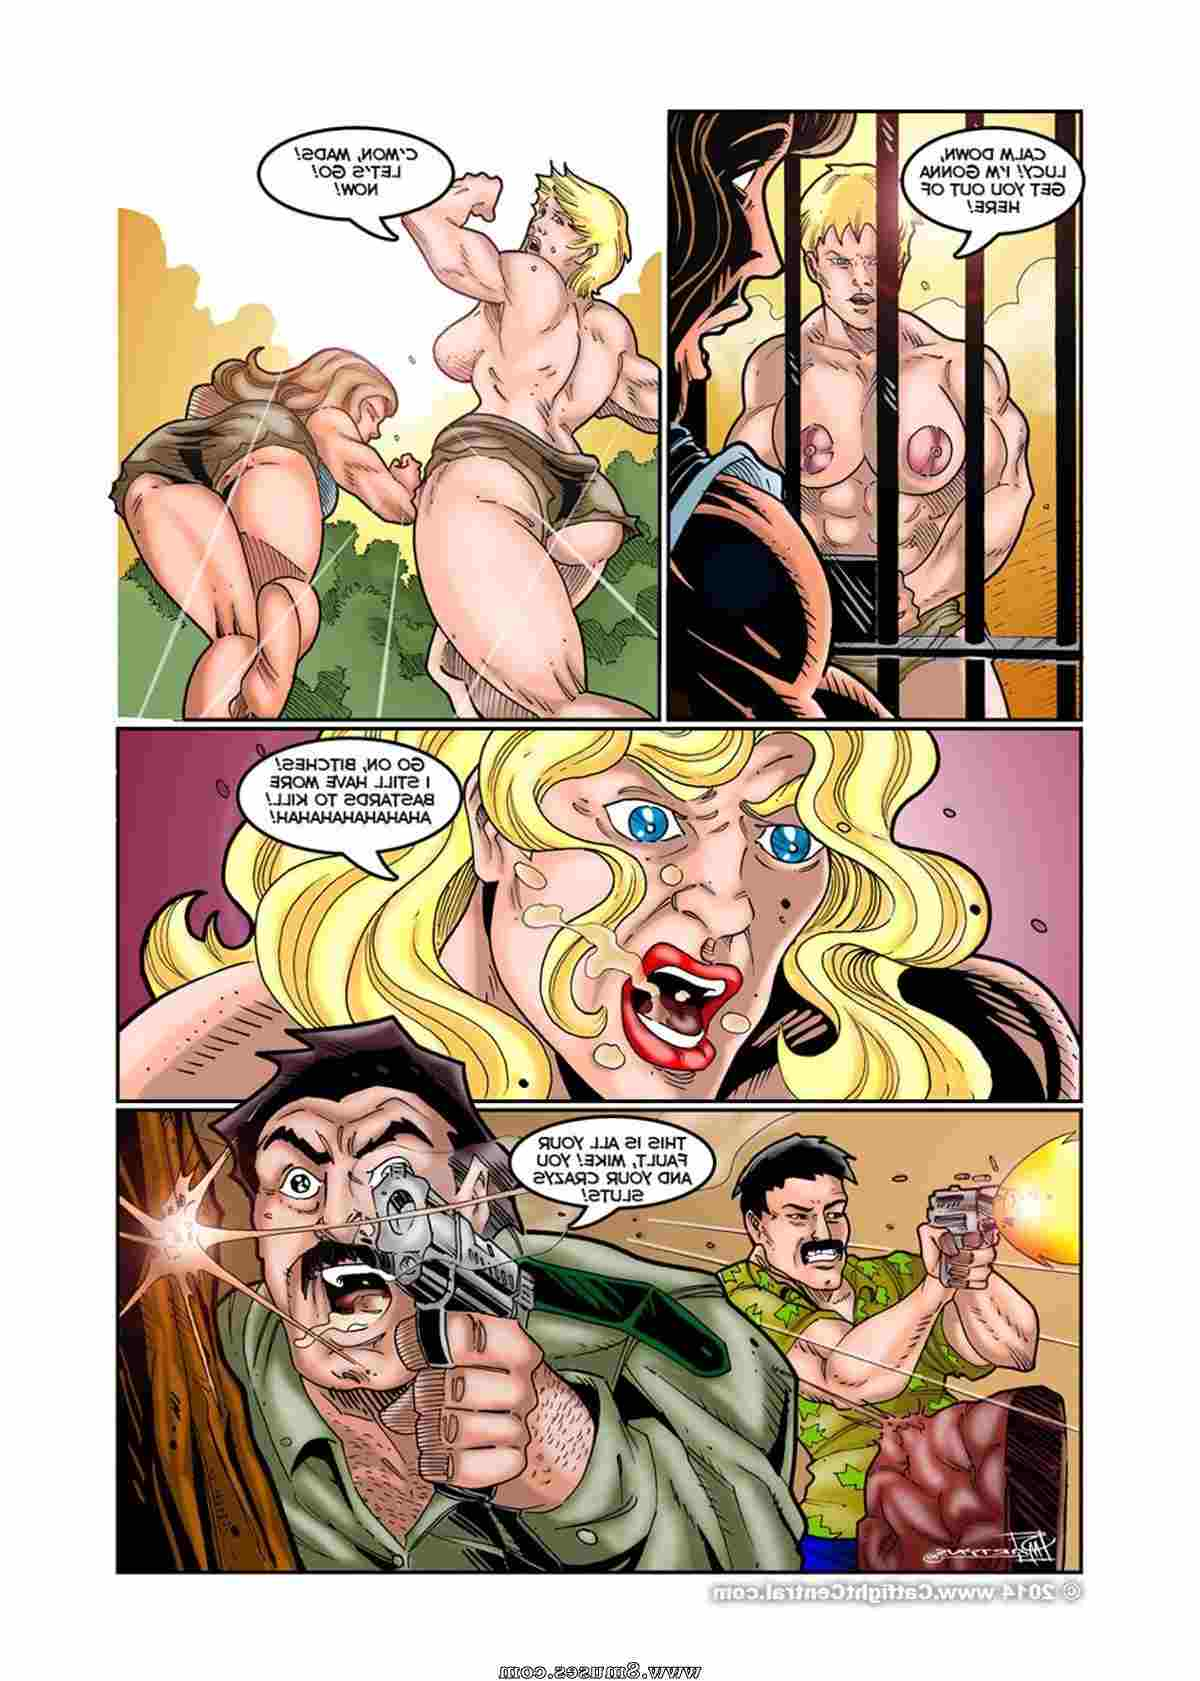 Central-Comics/Catfight-Central/Prison-Bitches Prison_Bitches__8muses_-_Sex_and_Porn_Comics_83.jpg